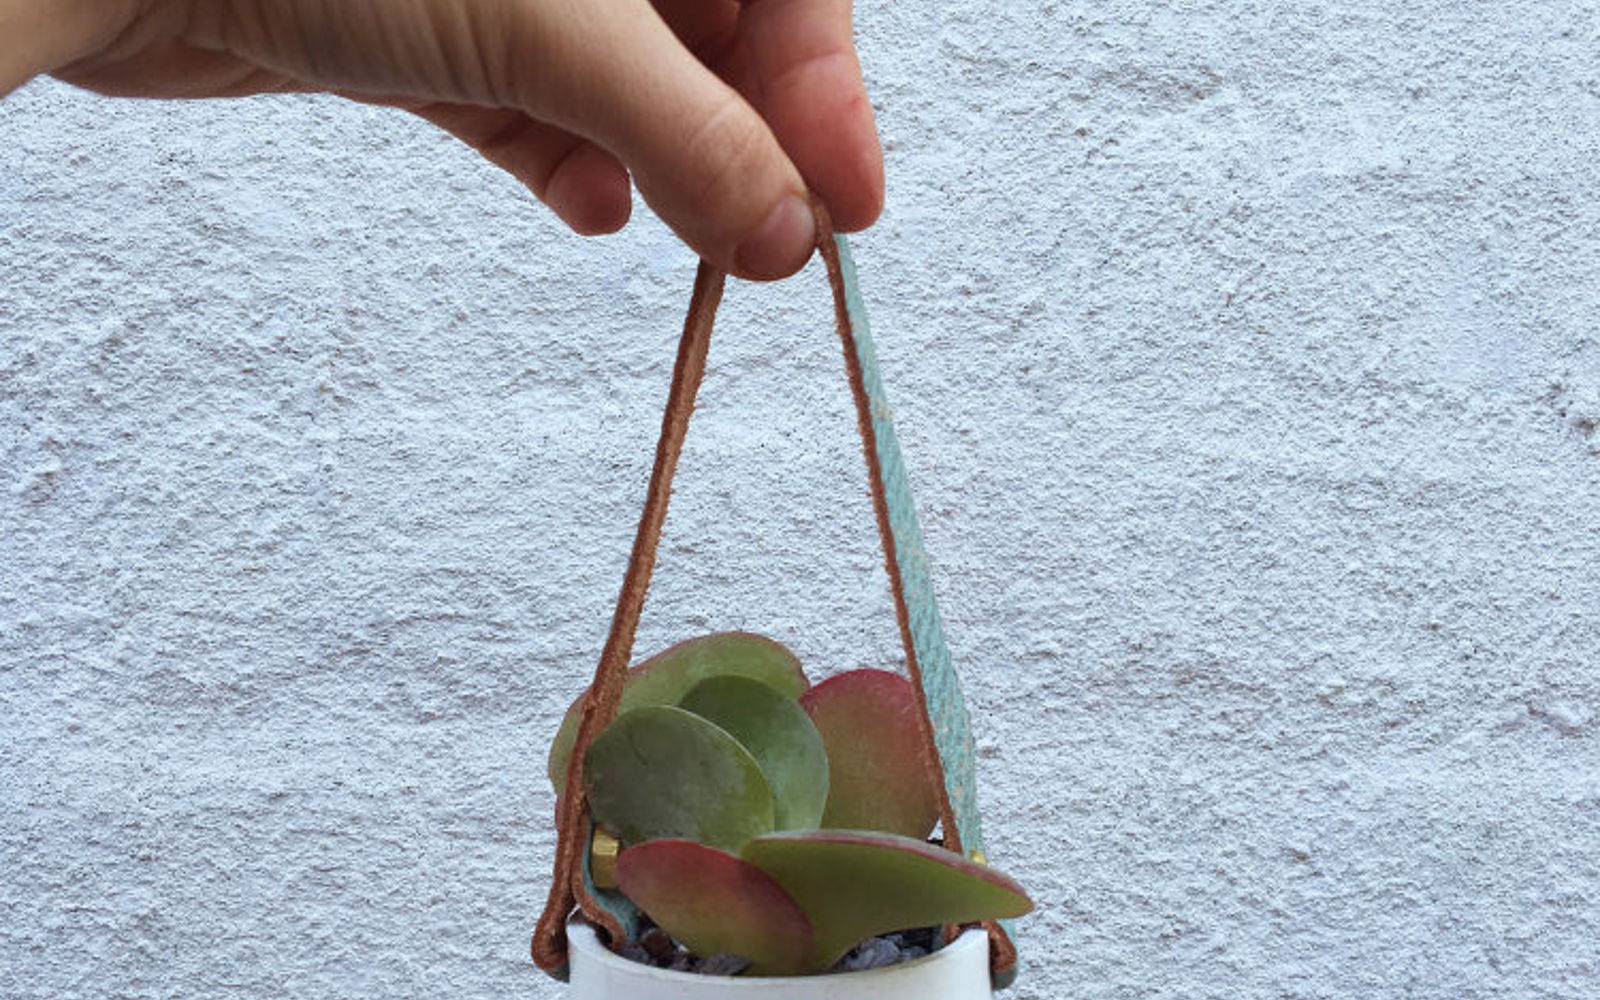 s 17 insanely fun ways to display your favorite succulents, flowers, gardening, succulents, Turn a PVC cap into a tiny hanging planter